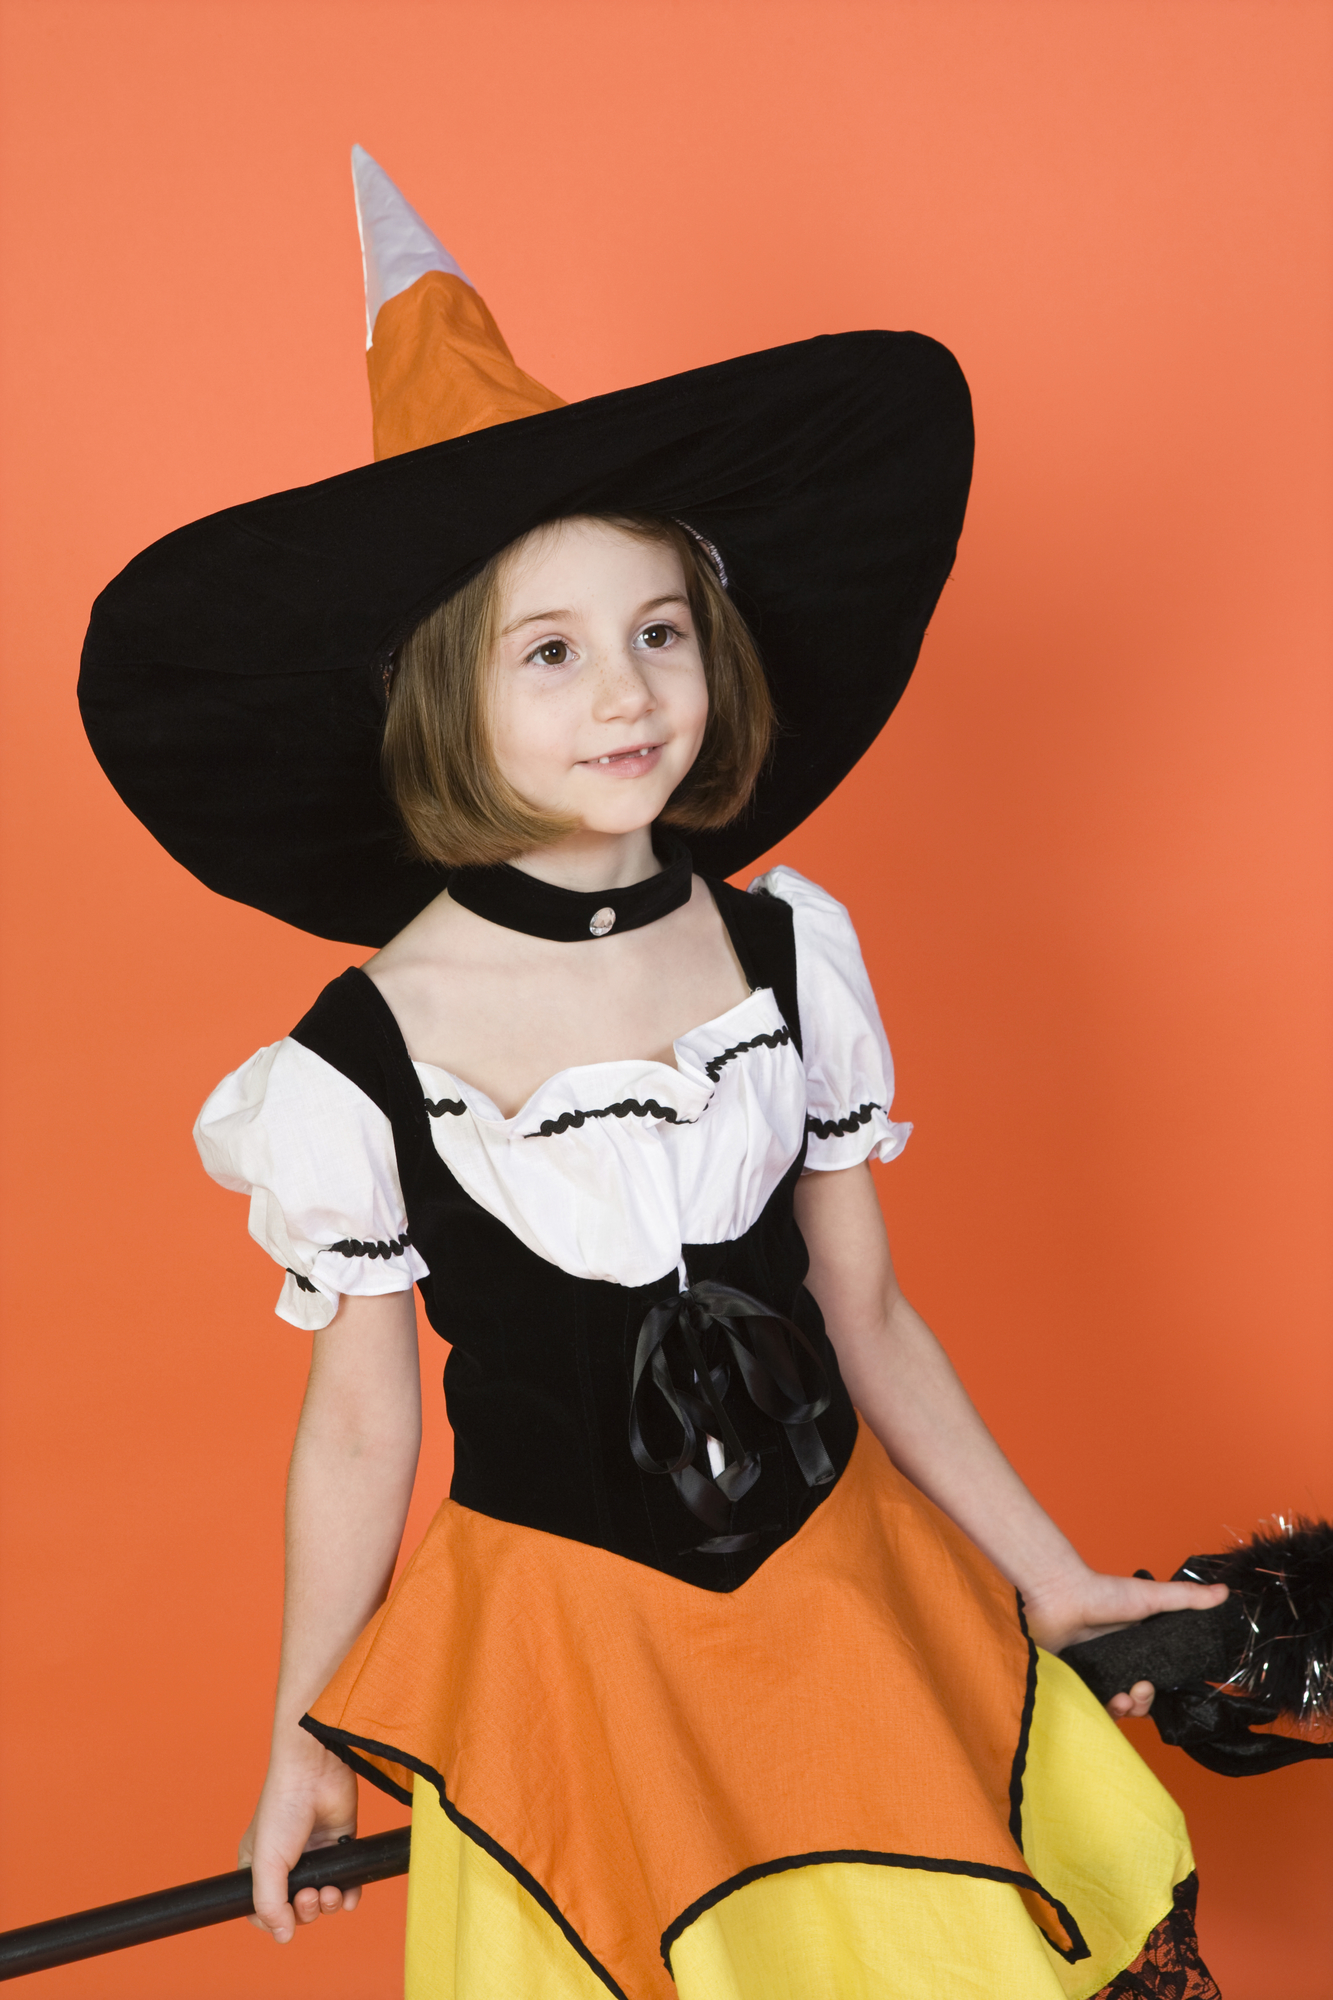 Halloween Costume 303.Why You Should Sew Your Own Halloween Costume The Sewing Center